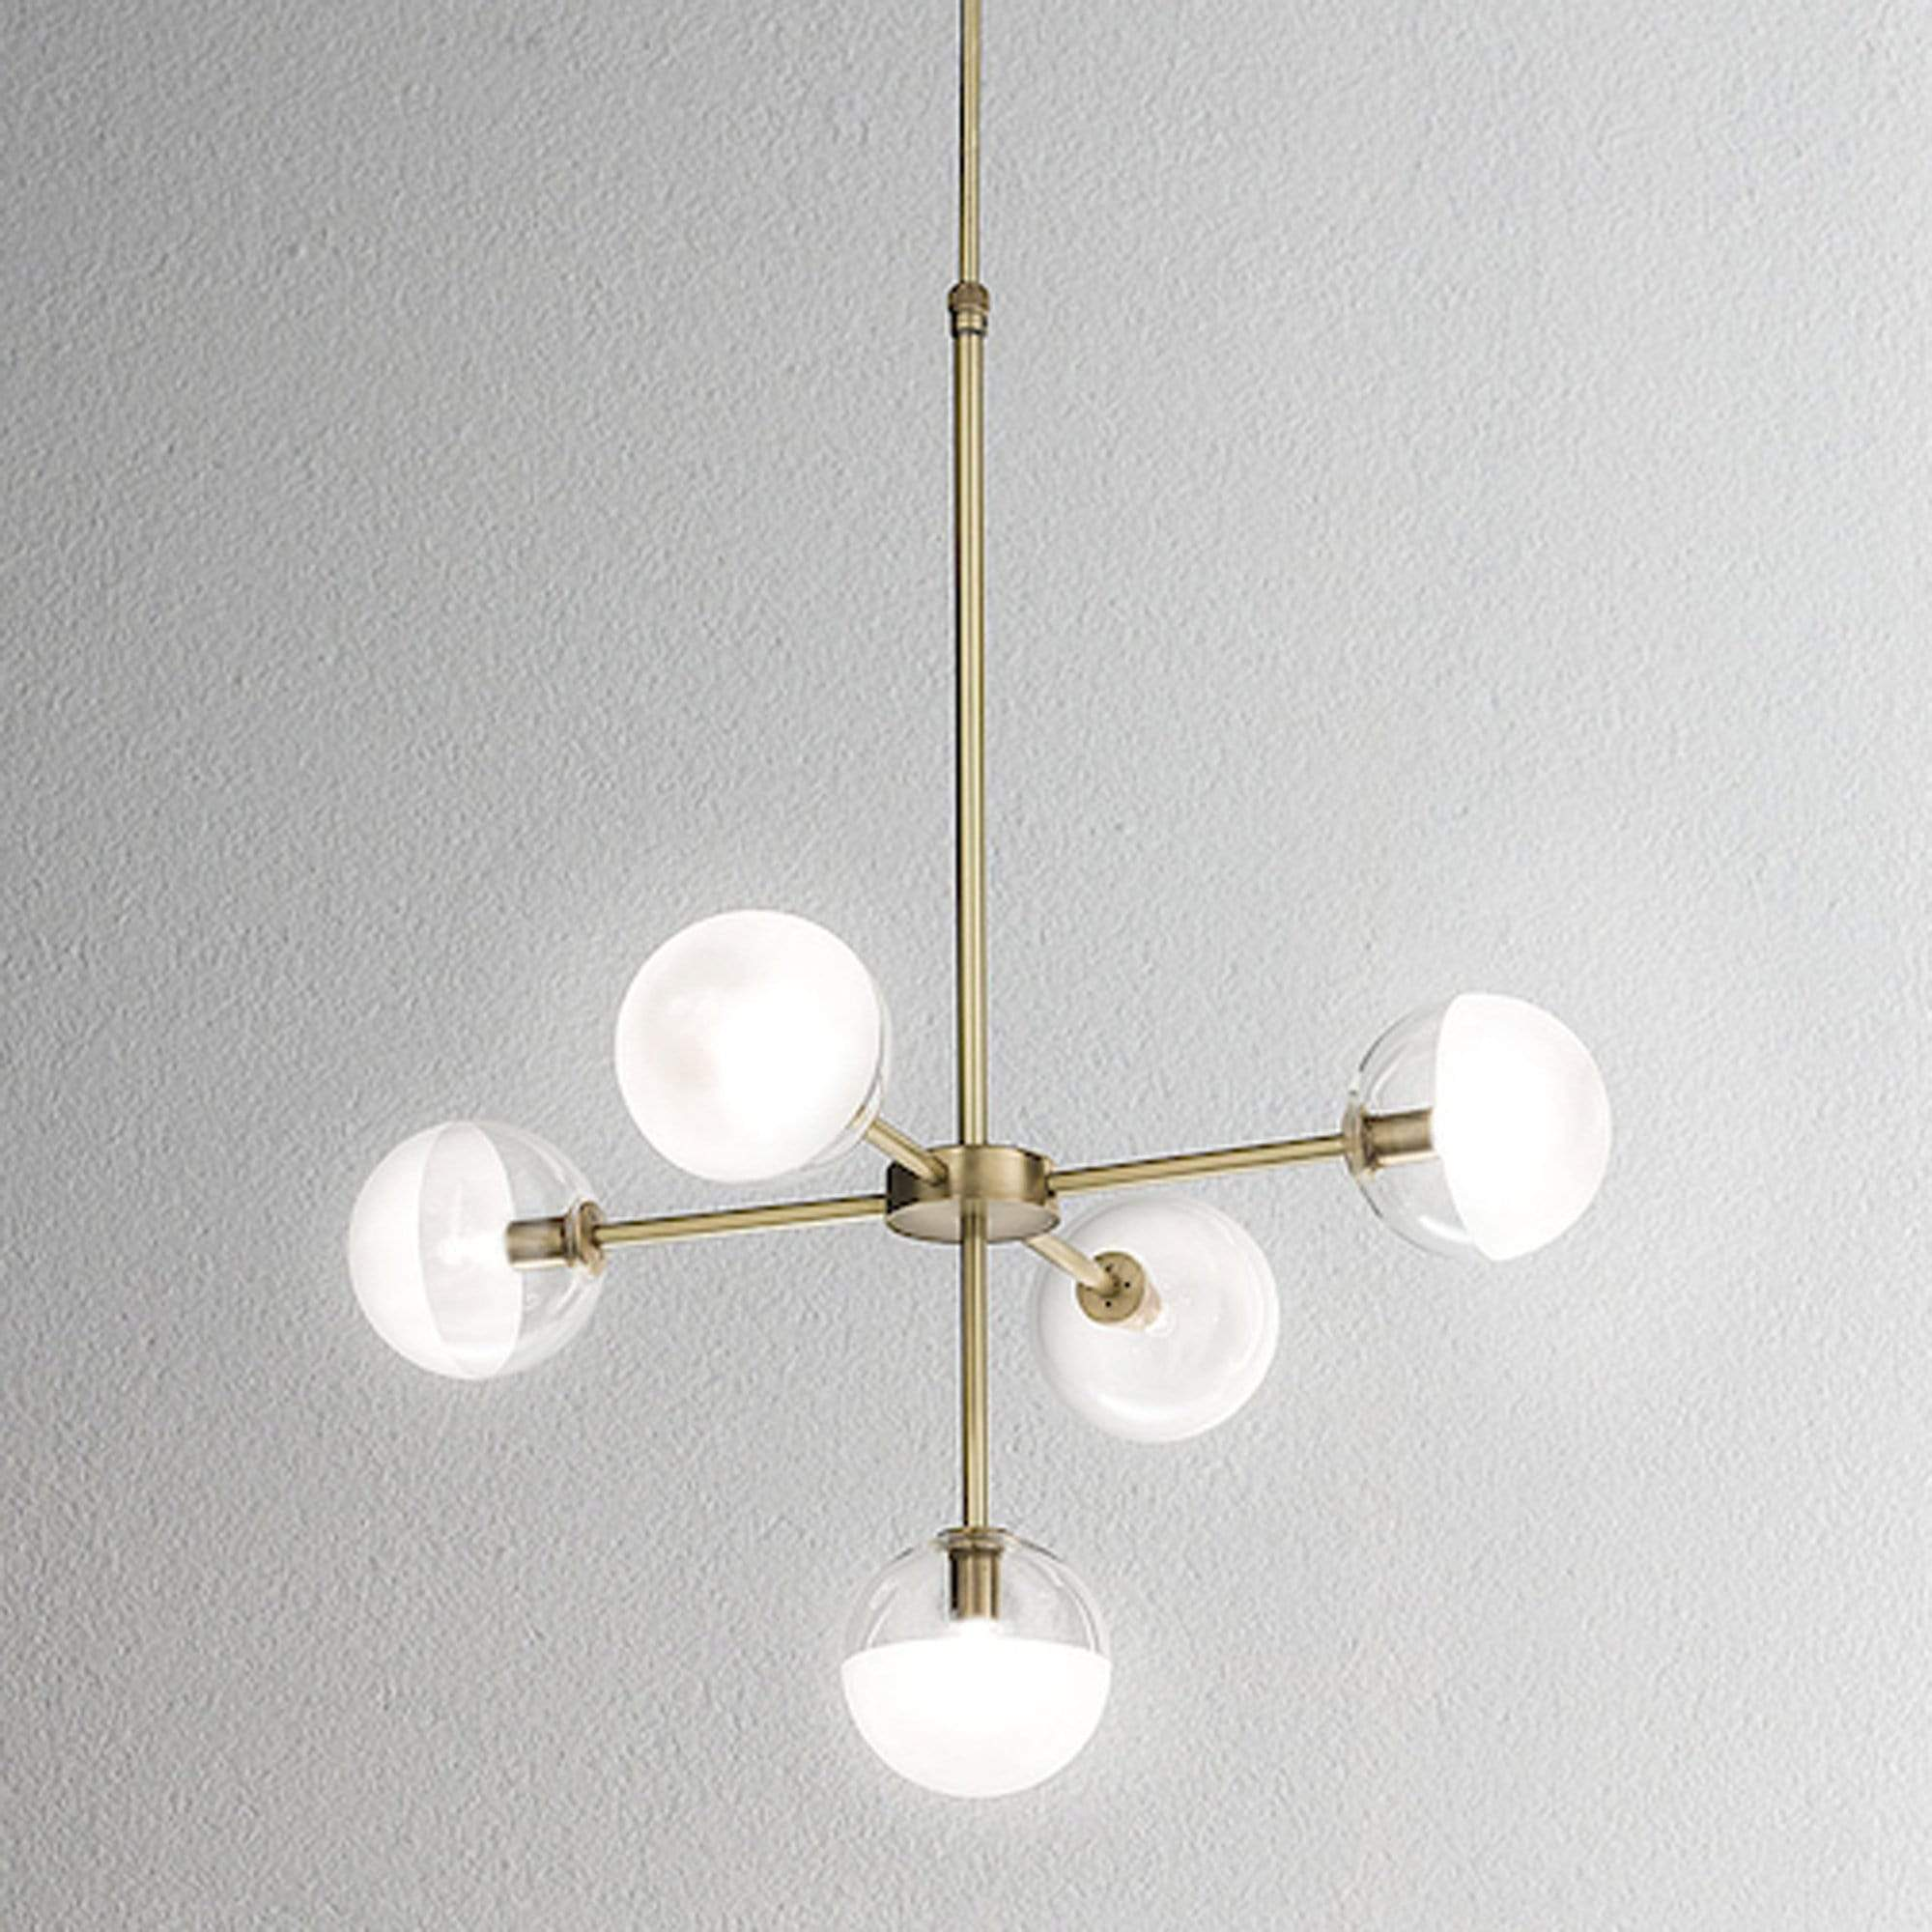 Interior Pendant Molecola 5lt Suspension Lamp